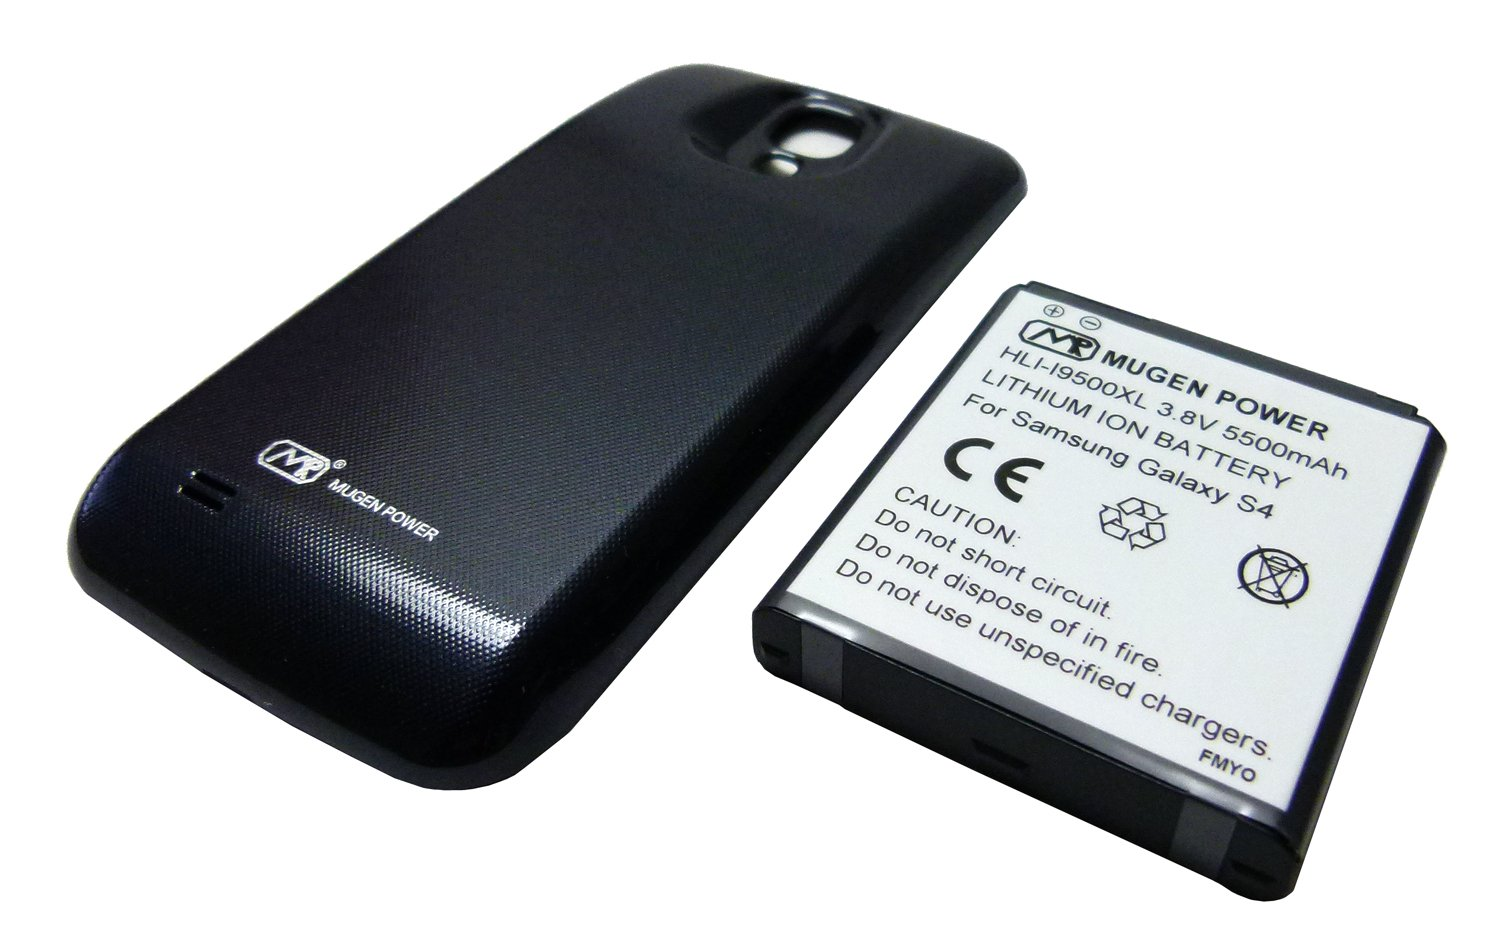 Notebook samsung galaxy s4 - Amazon Com Mugen Power Super Extended 5500mah Battery For Samsung Galaxy S4 With Black Door Cover Cell Phones Accessories